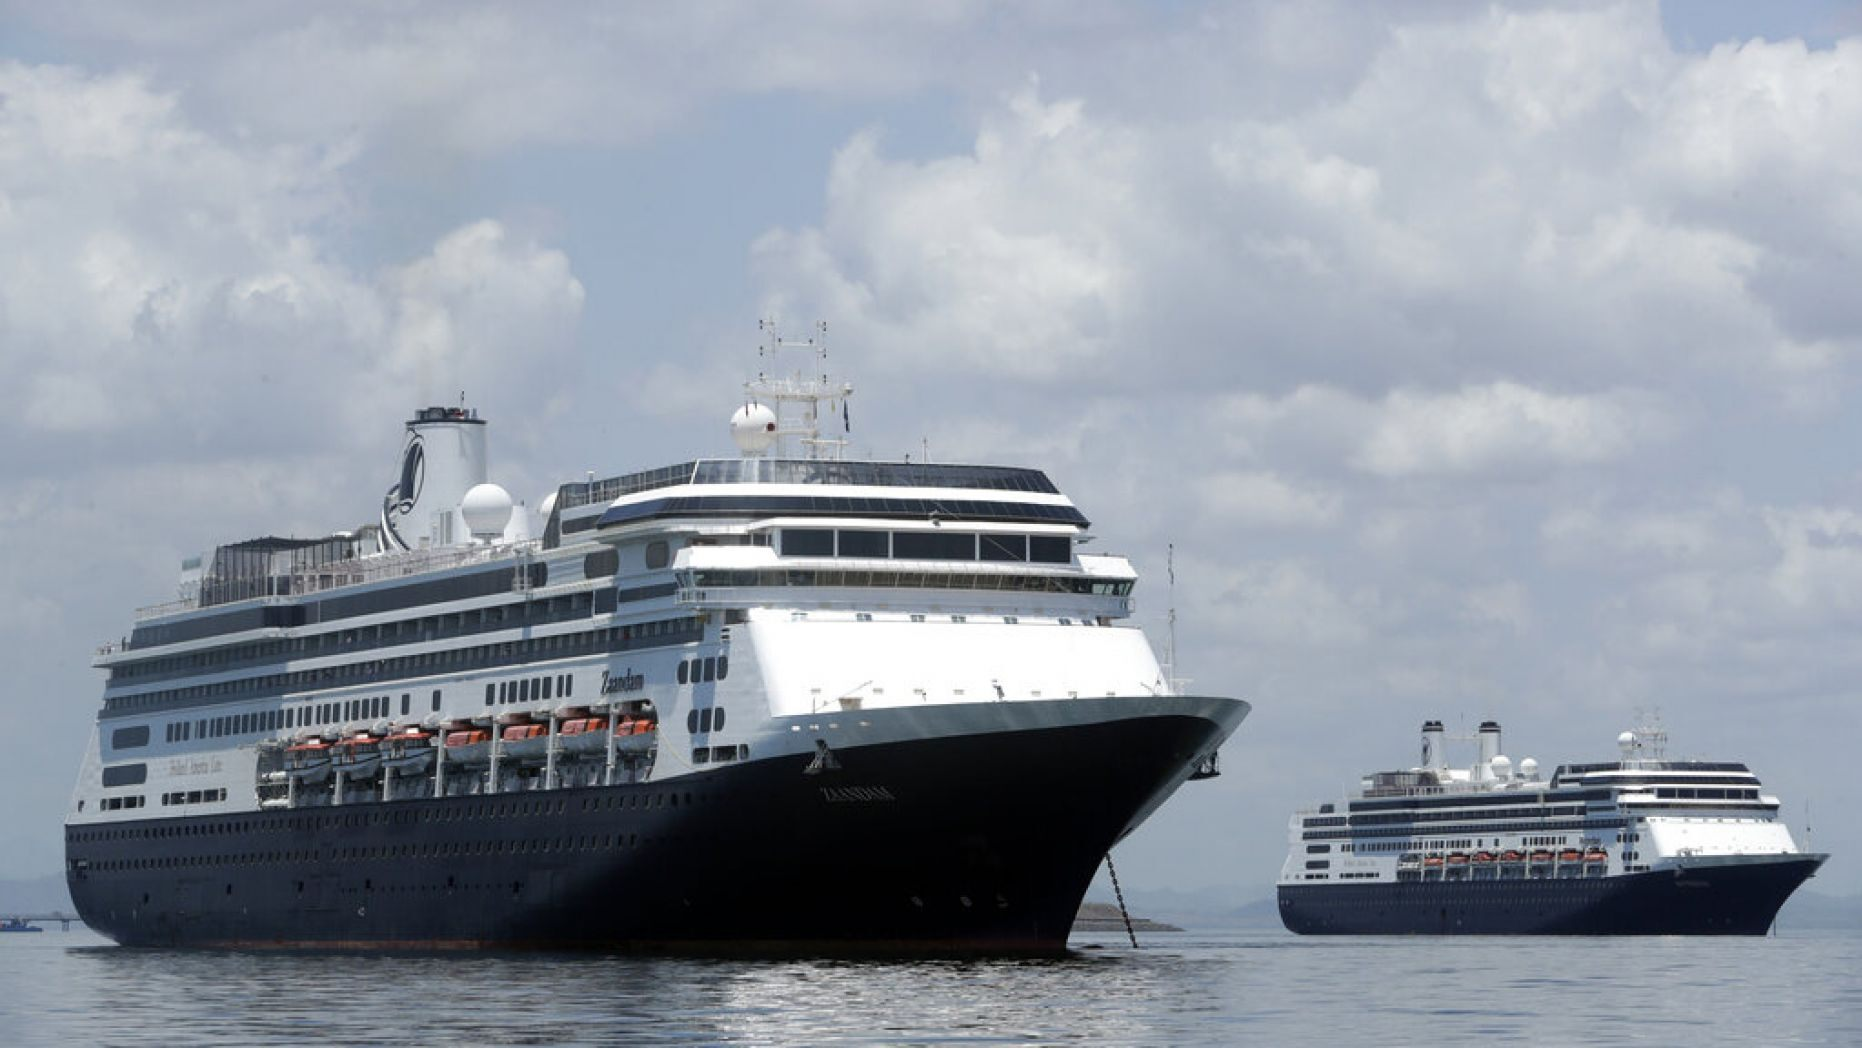 The Zaandam cruise ship, left, us carrying 189 guests and crew (73 and 116, respectively) who reported feeling ill,